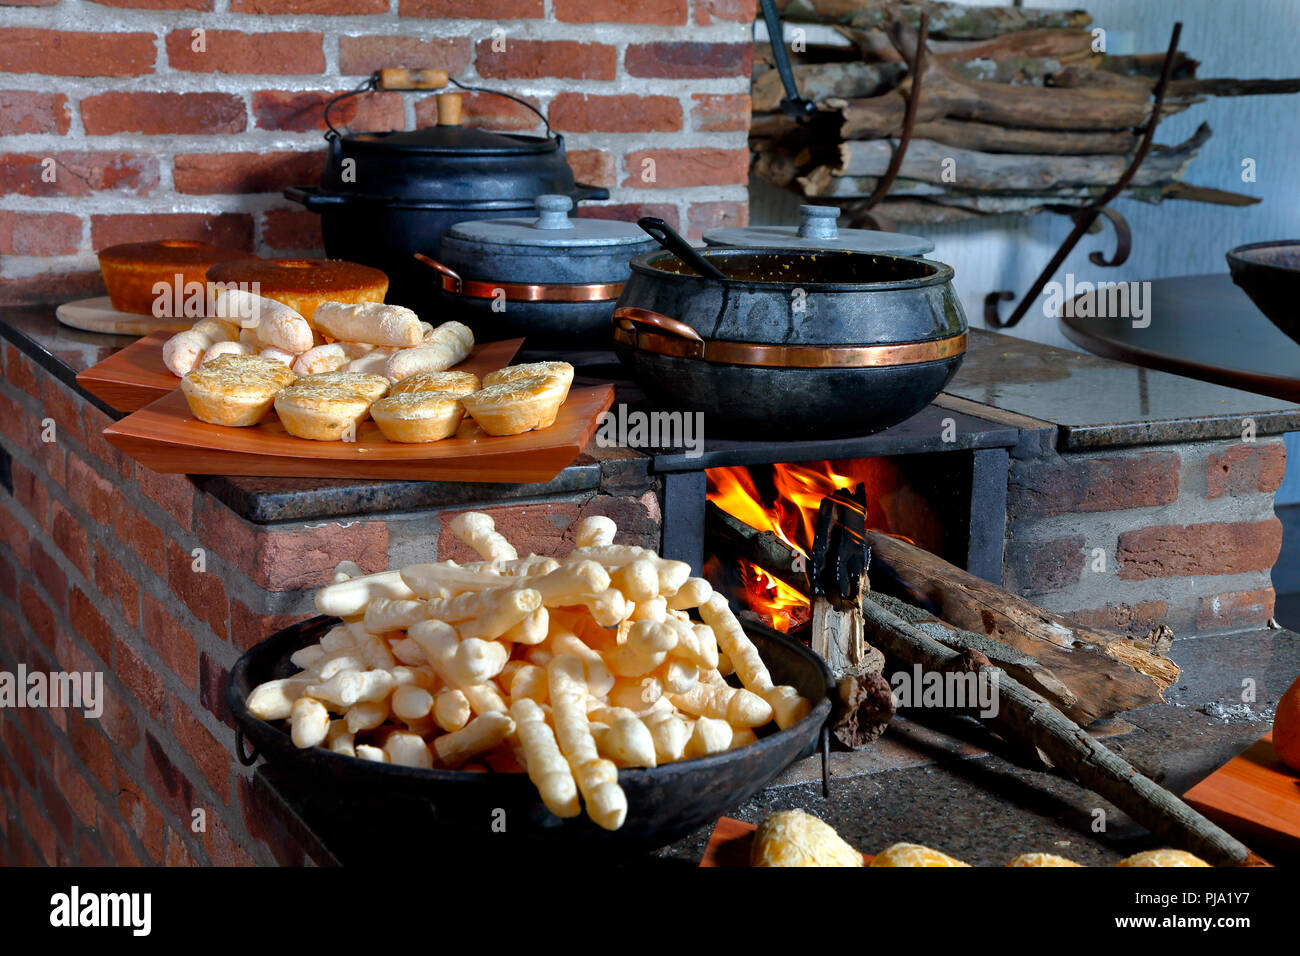 Wood stove in typical rural house in the interior of Brazil Stock Photo